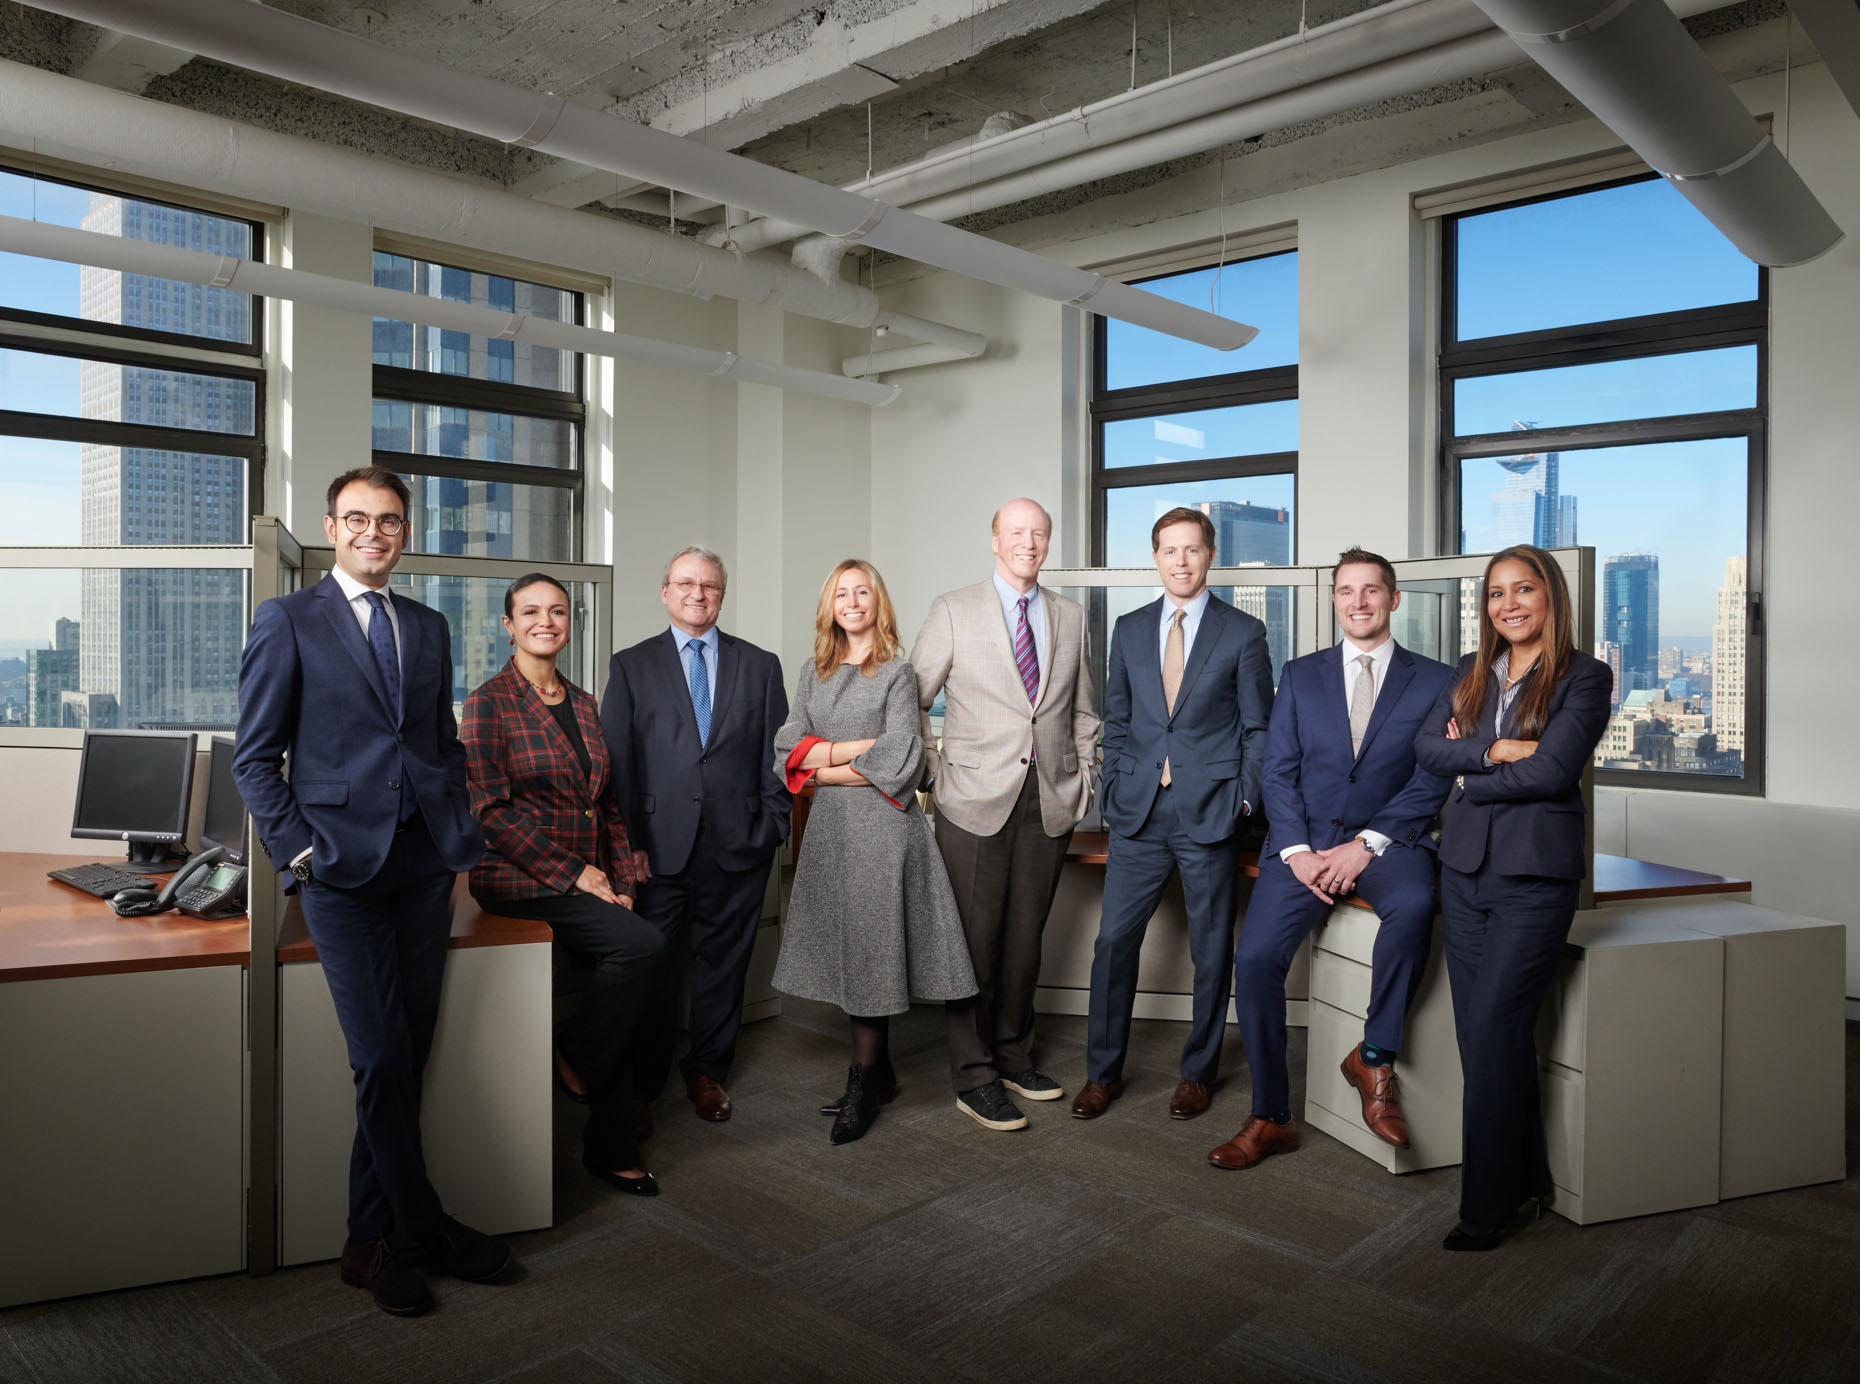 Acrow Bridge Corporate Executive Portrait | NYC